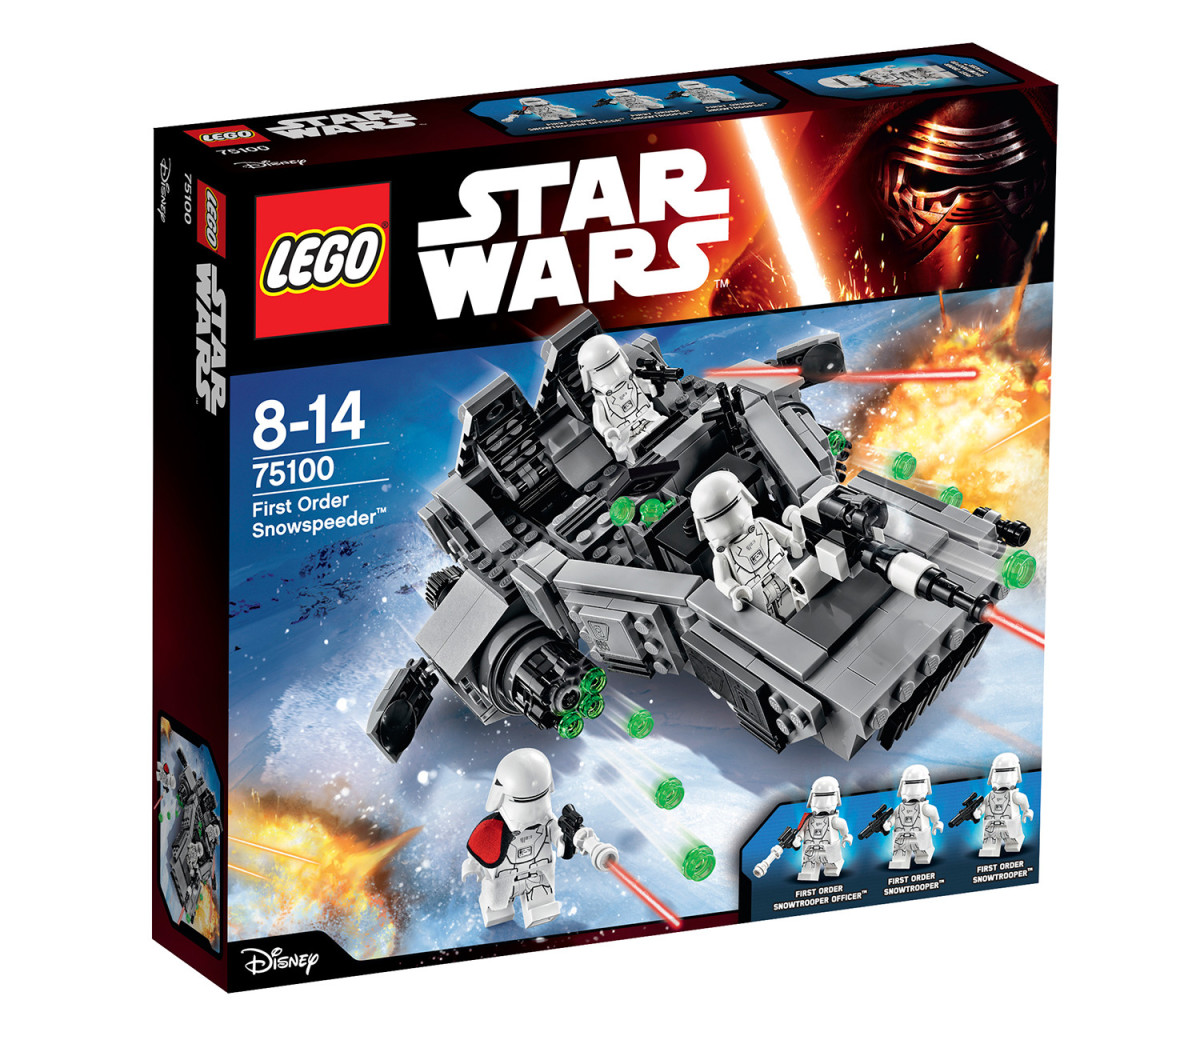 lego-unveils-star-wars-the-force-awakens-sets-10